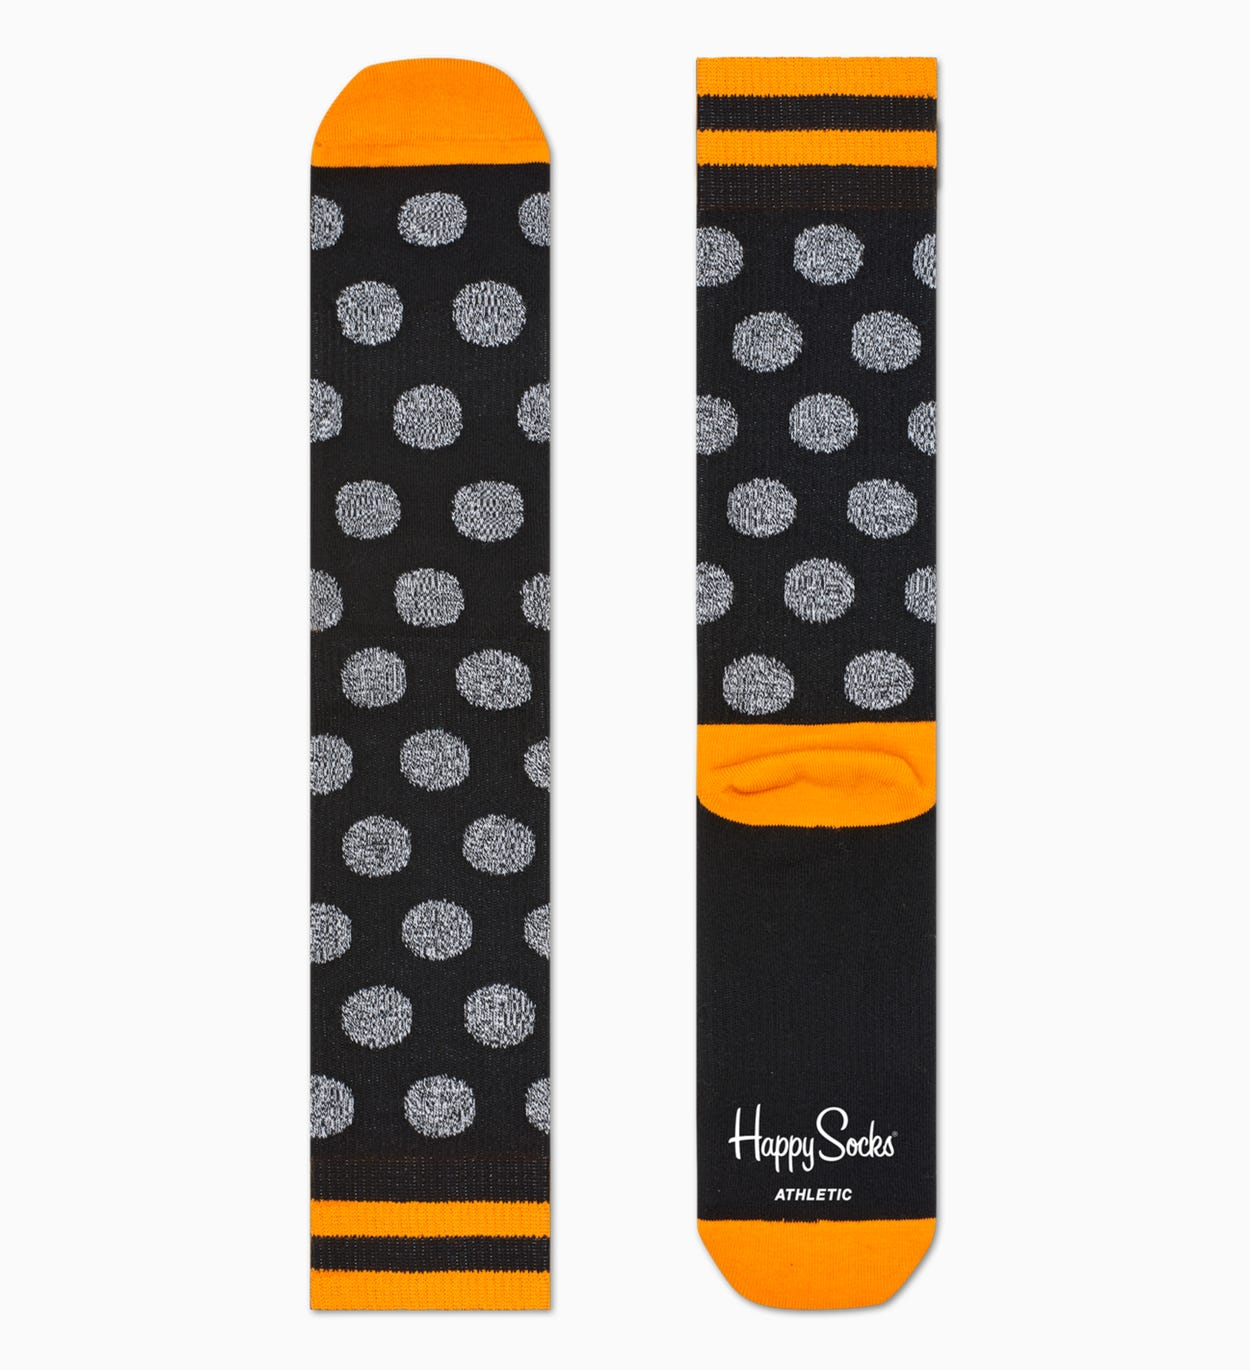 Sorte sportsstrømper: Big Dot - ATHLETIC | Happy Socks